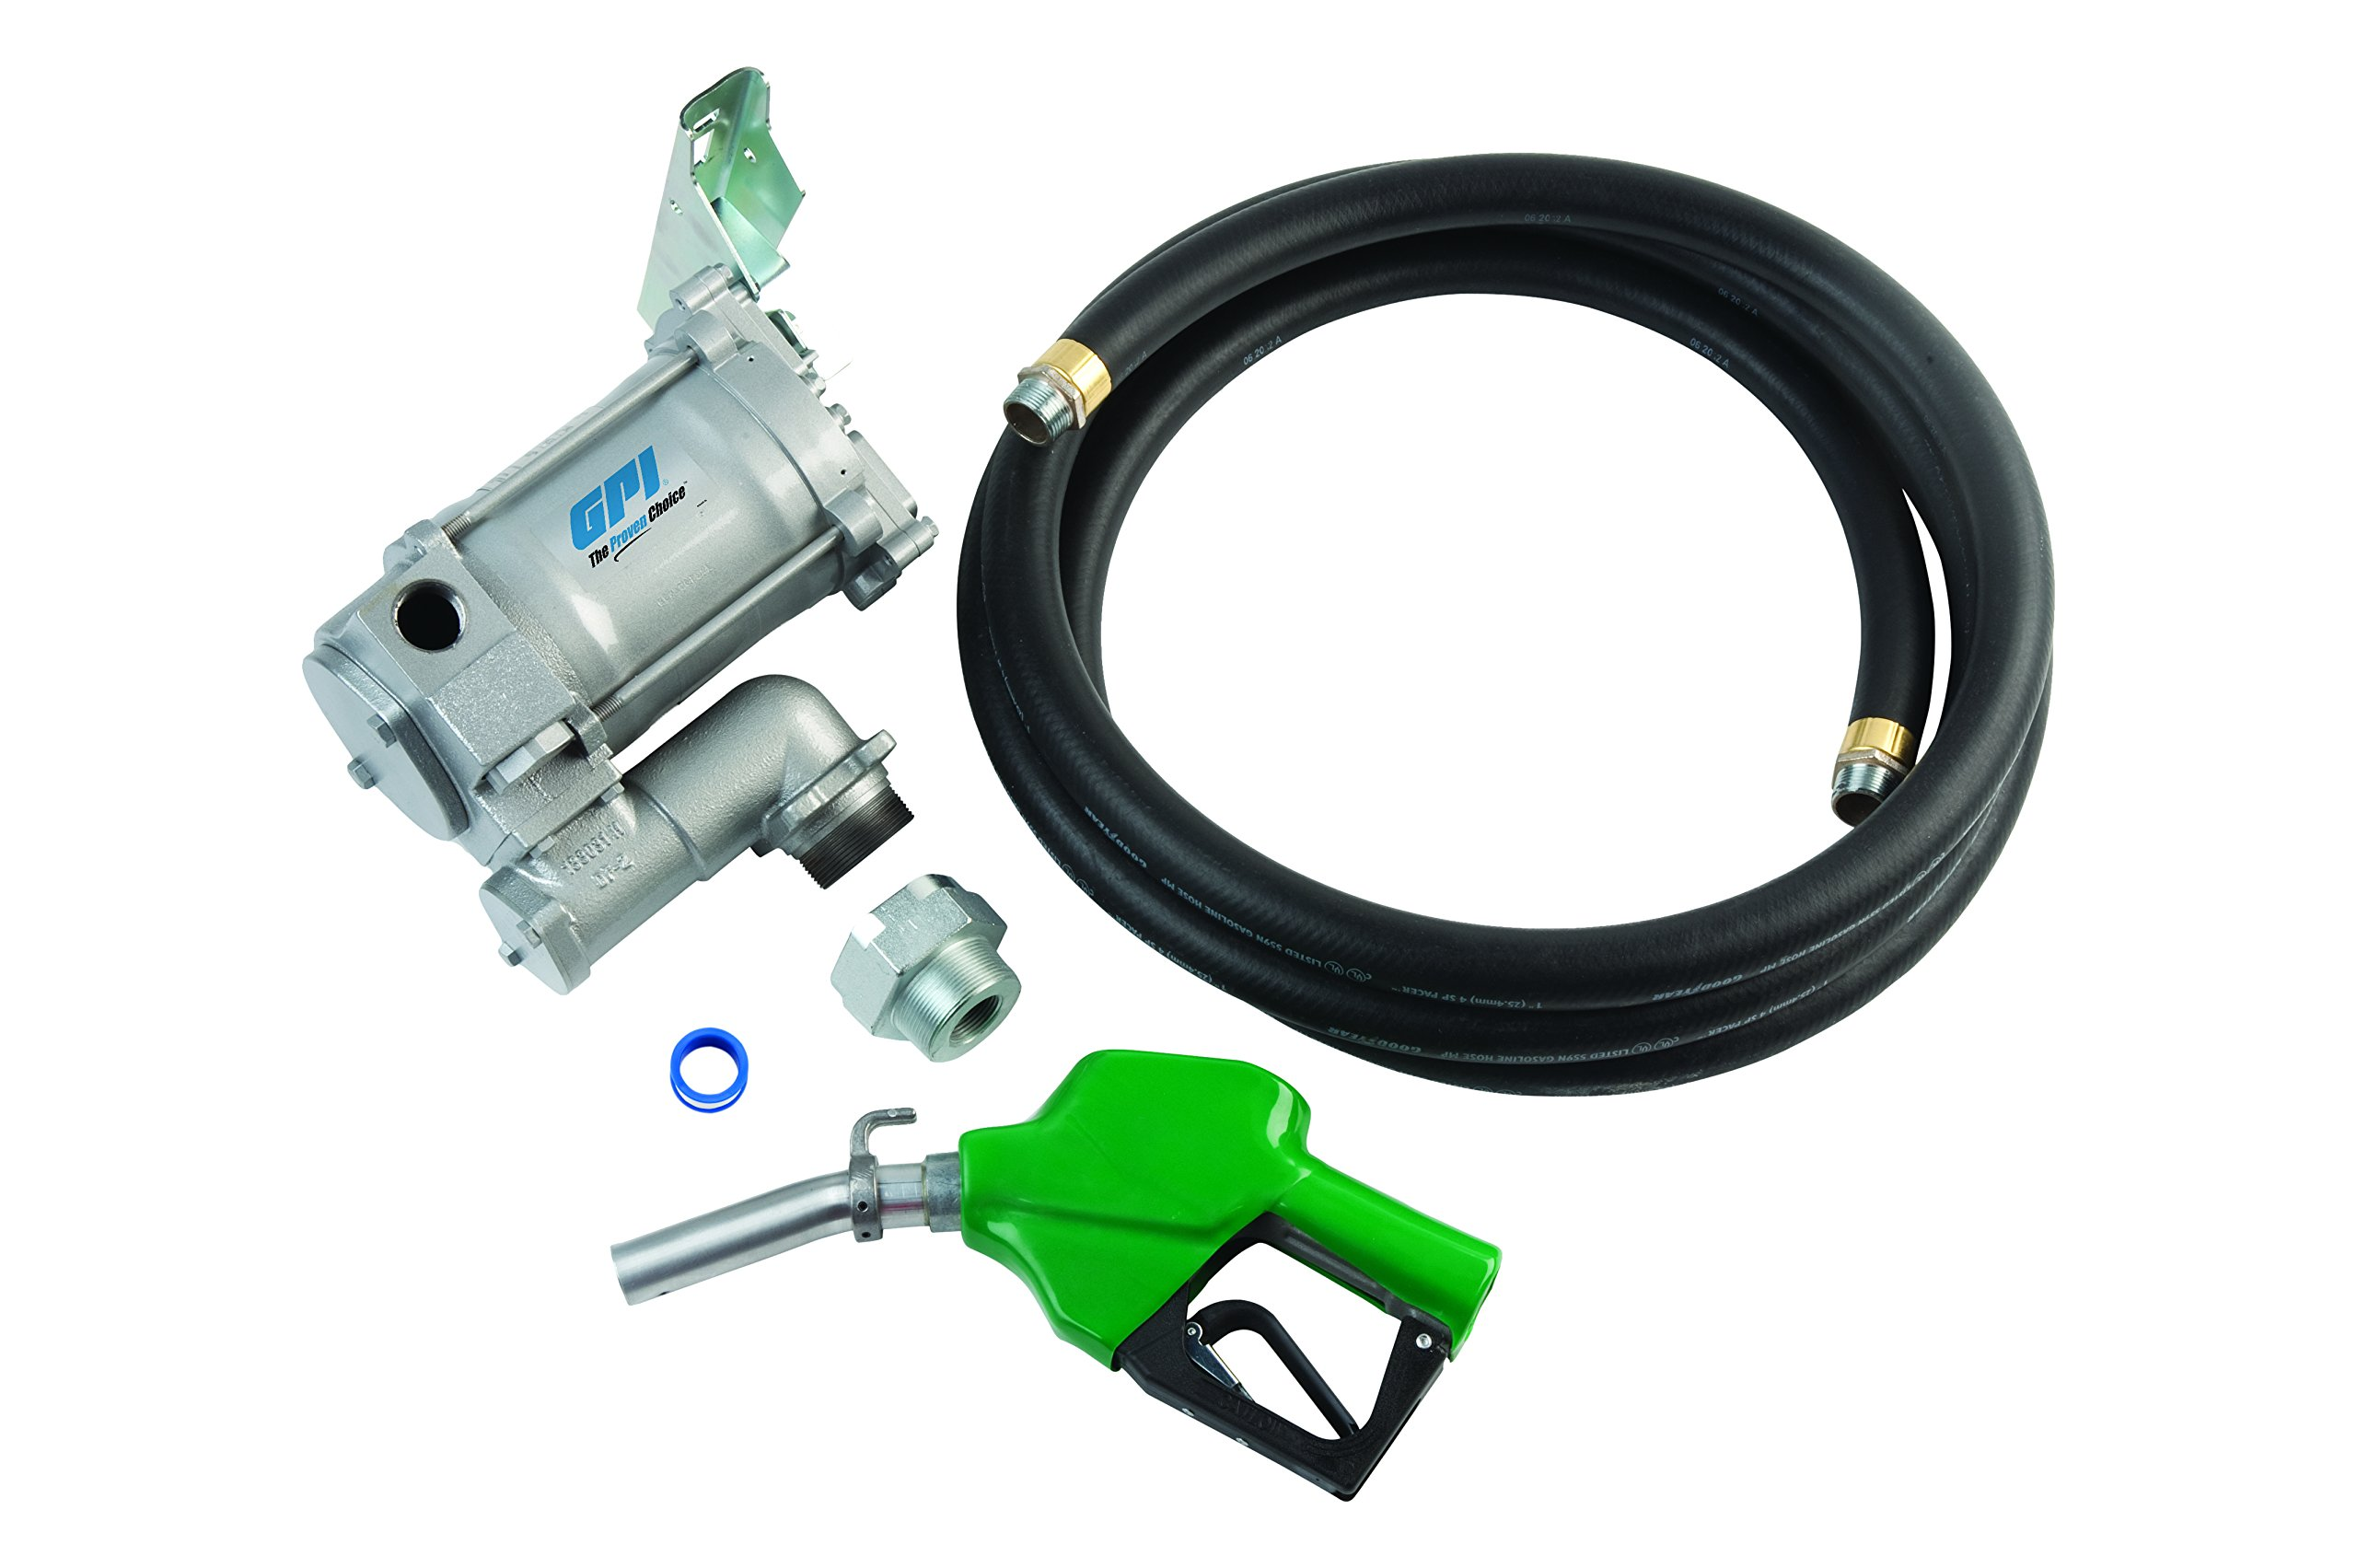 GPI 133200-33, M-3120-AD High Flow Cast Iron Fuel Transfer Pump, 20 GPM, 115-VAC, 1-Inch X 12-Foot Hose, Automatic Diesel Nozzle